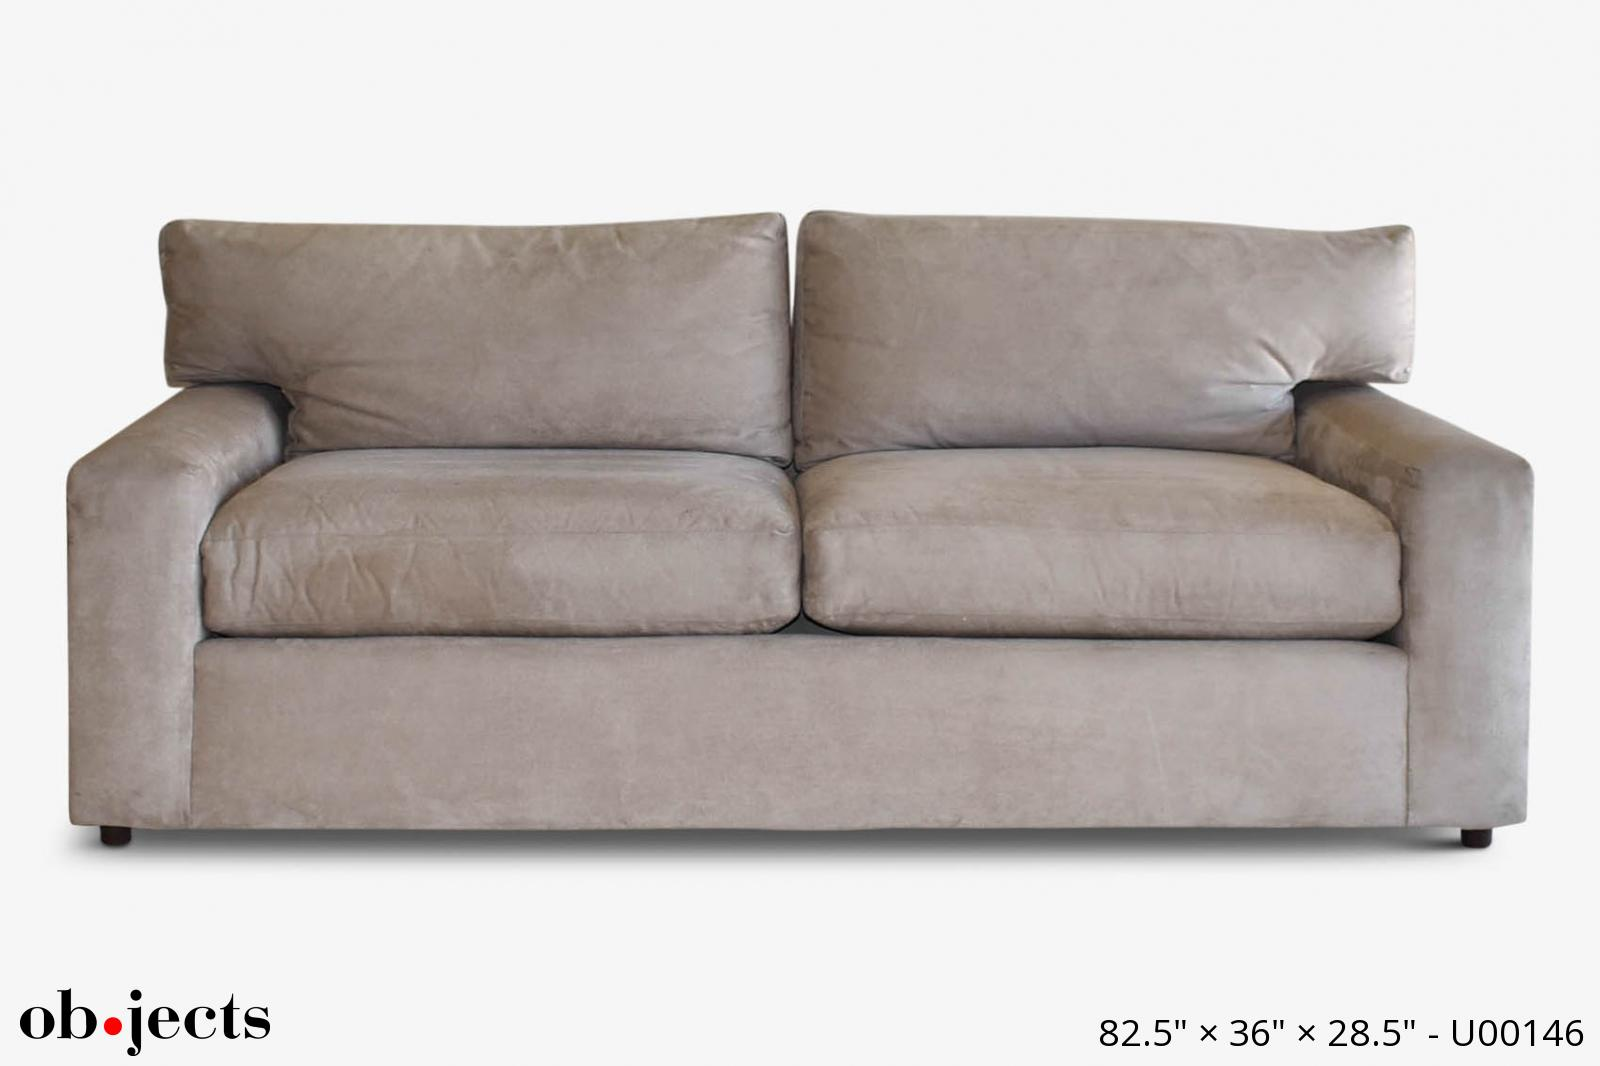 Sofa Mushroom Ultra Suede Ob Jects